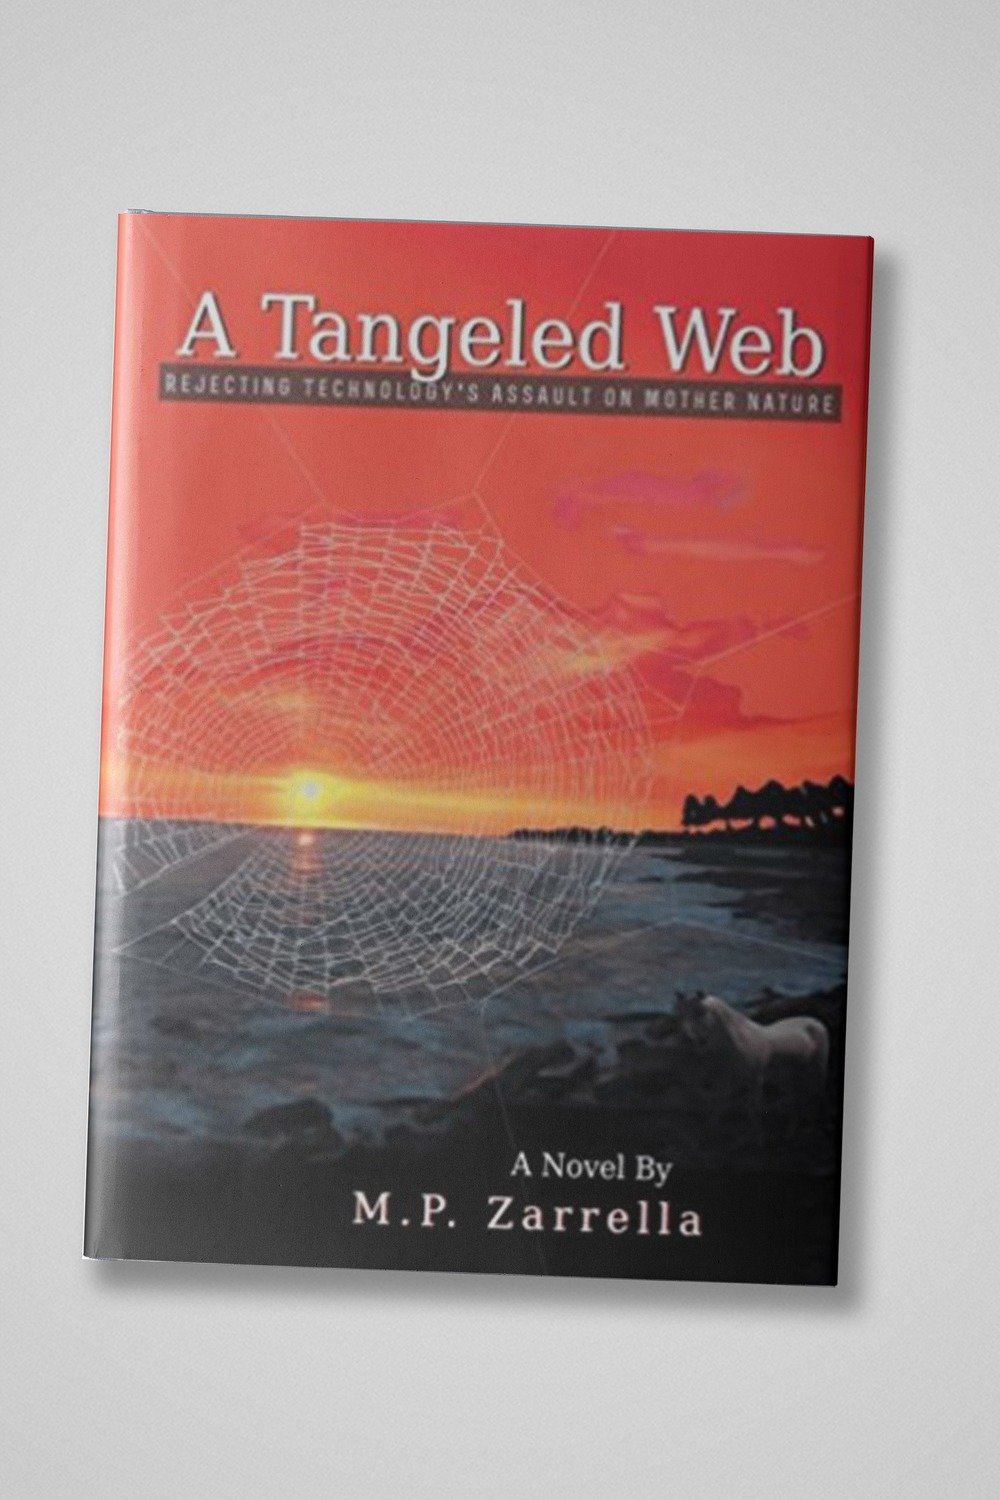 A Tangeled Web: Rejecting Technology's Assault on Mother Nature | Hardcover